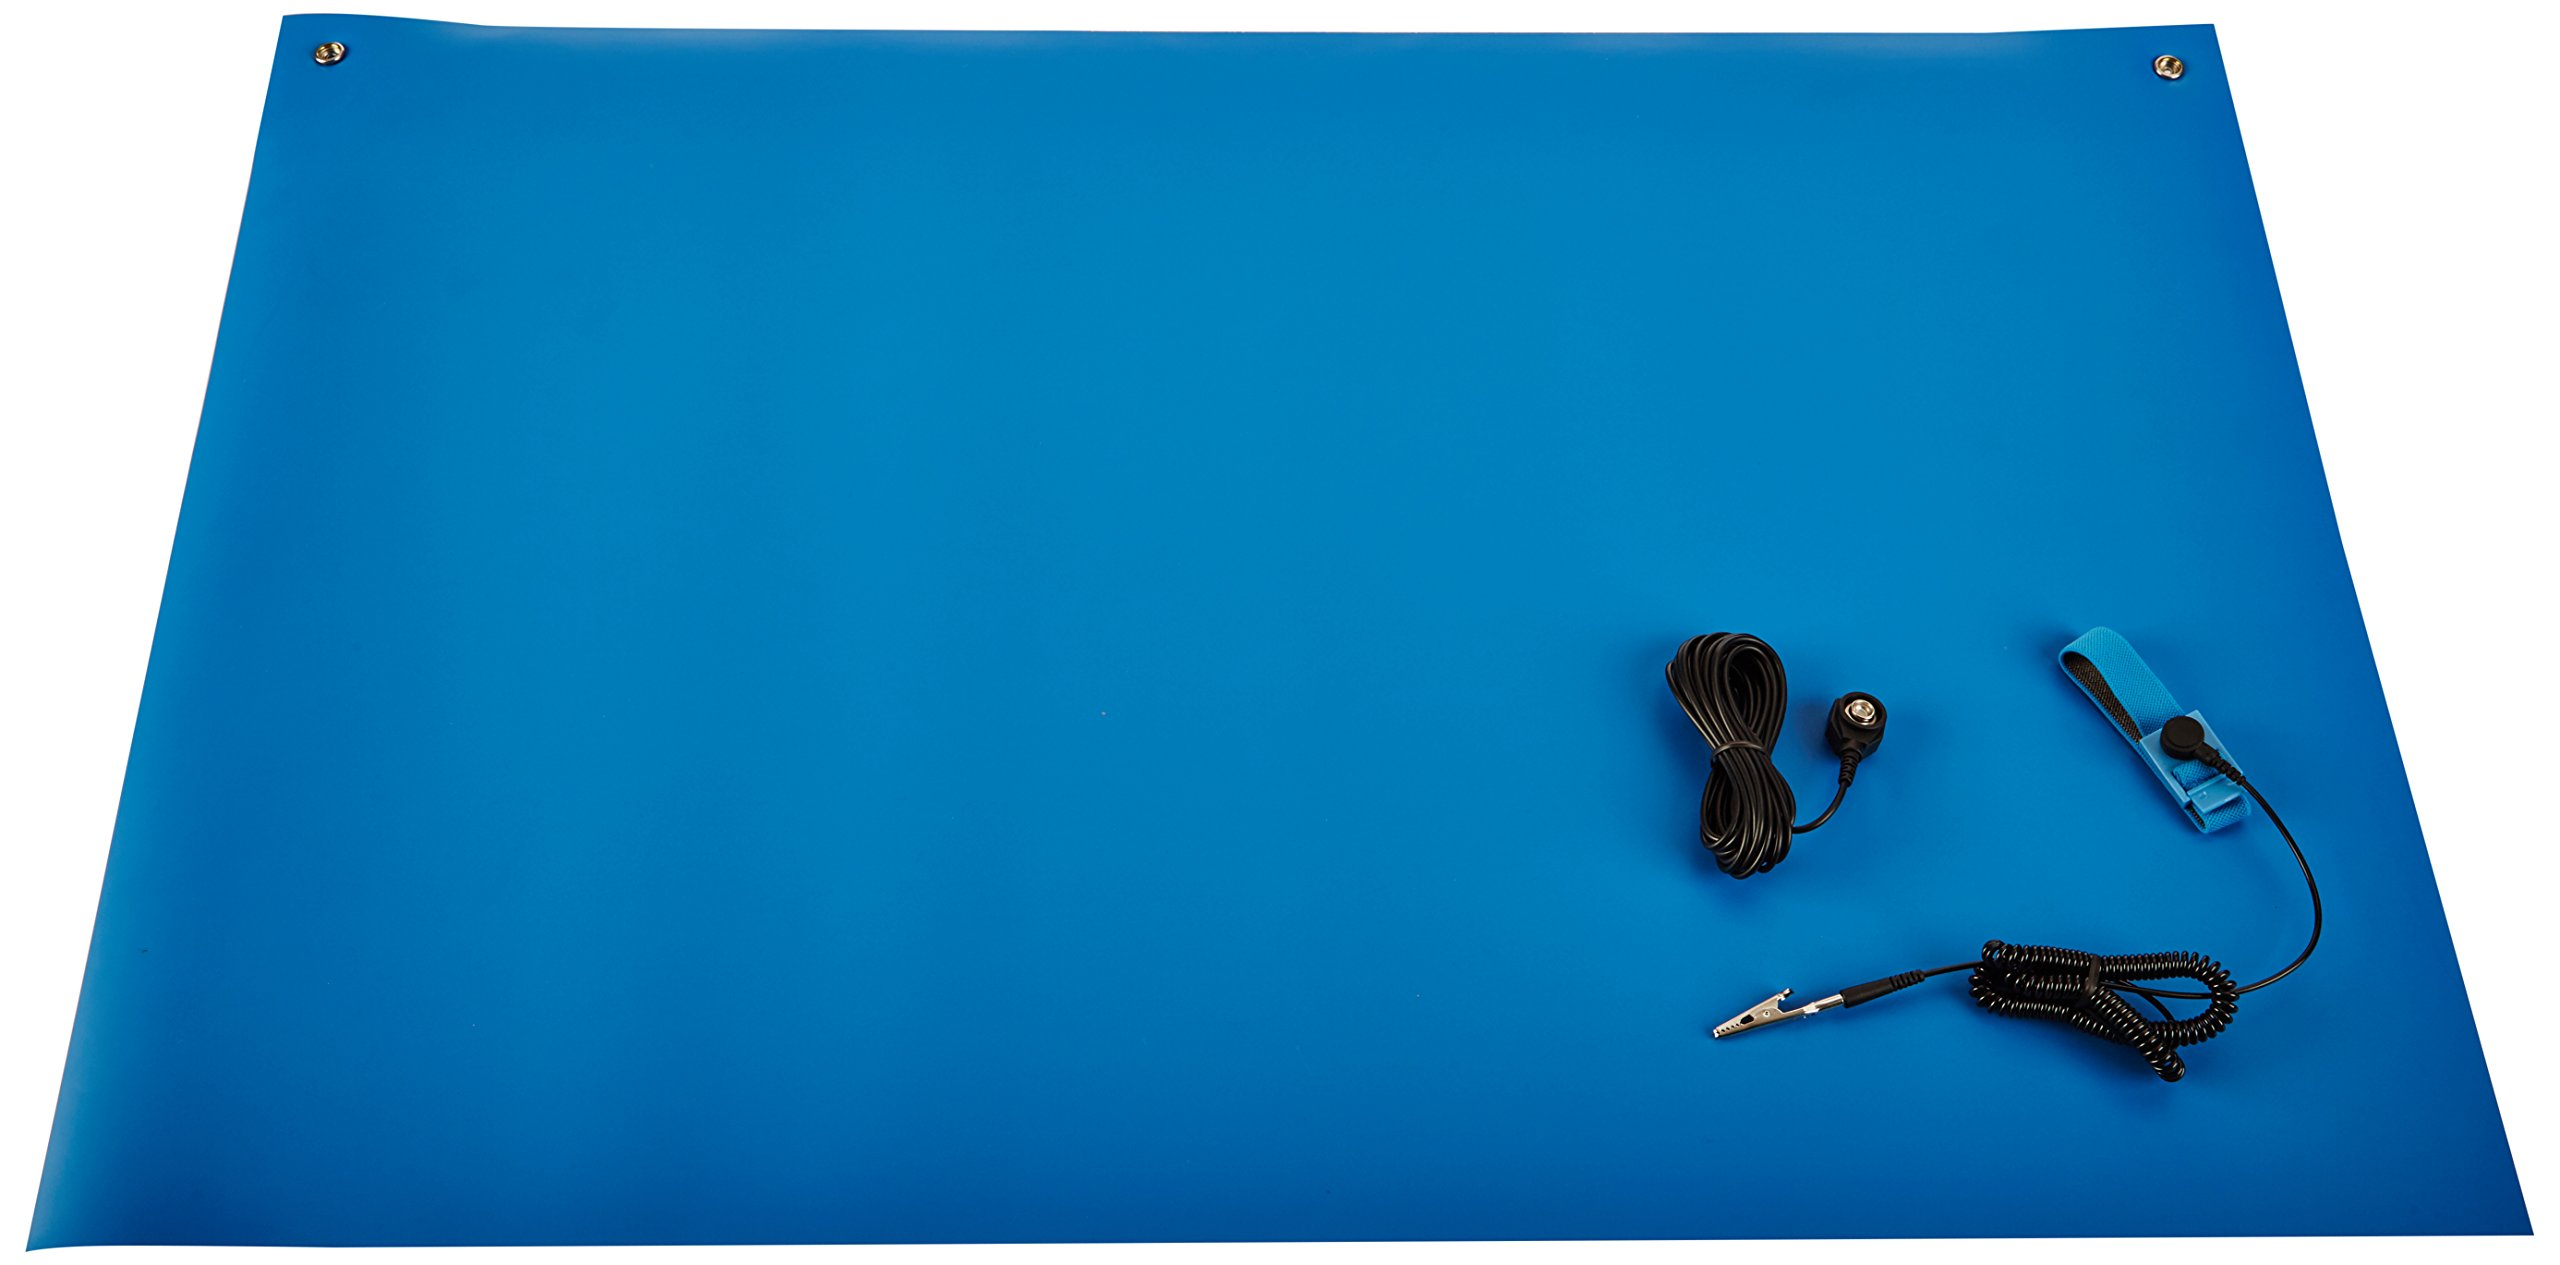 2 Wide x 3 Long x 0.06 Thick Bertech ESD Two Layer Rubber Mat Kit with a Wrist Strap and a Grounding Cord Blue